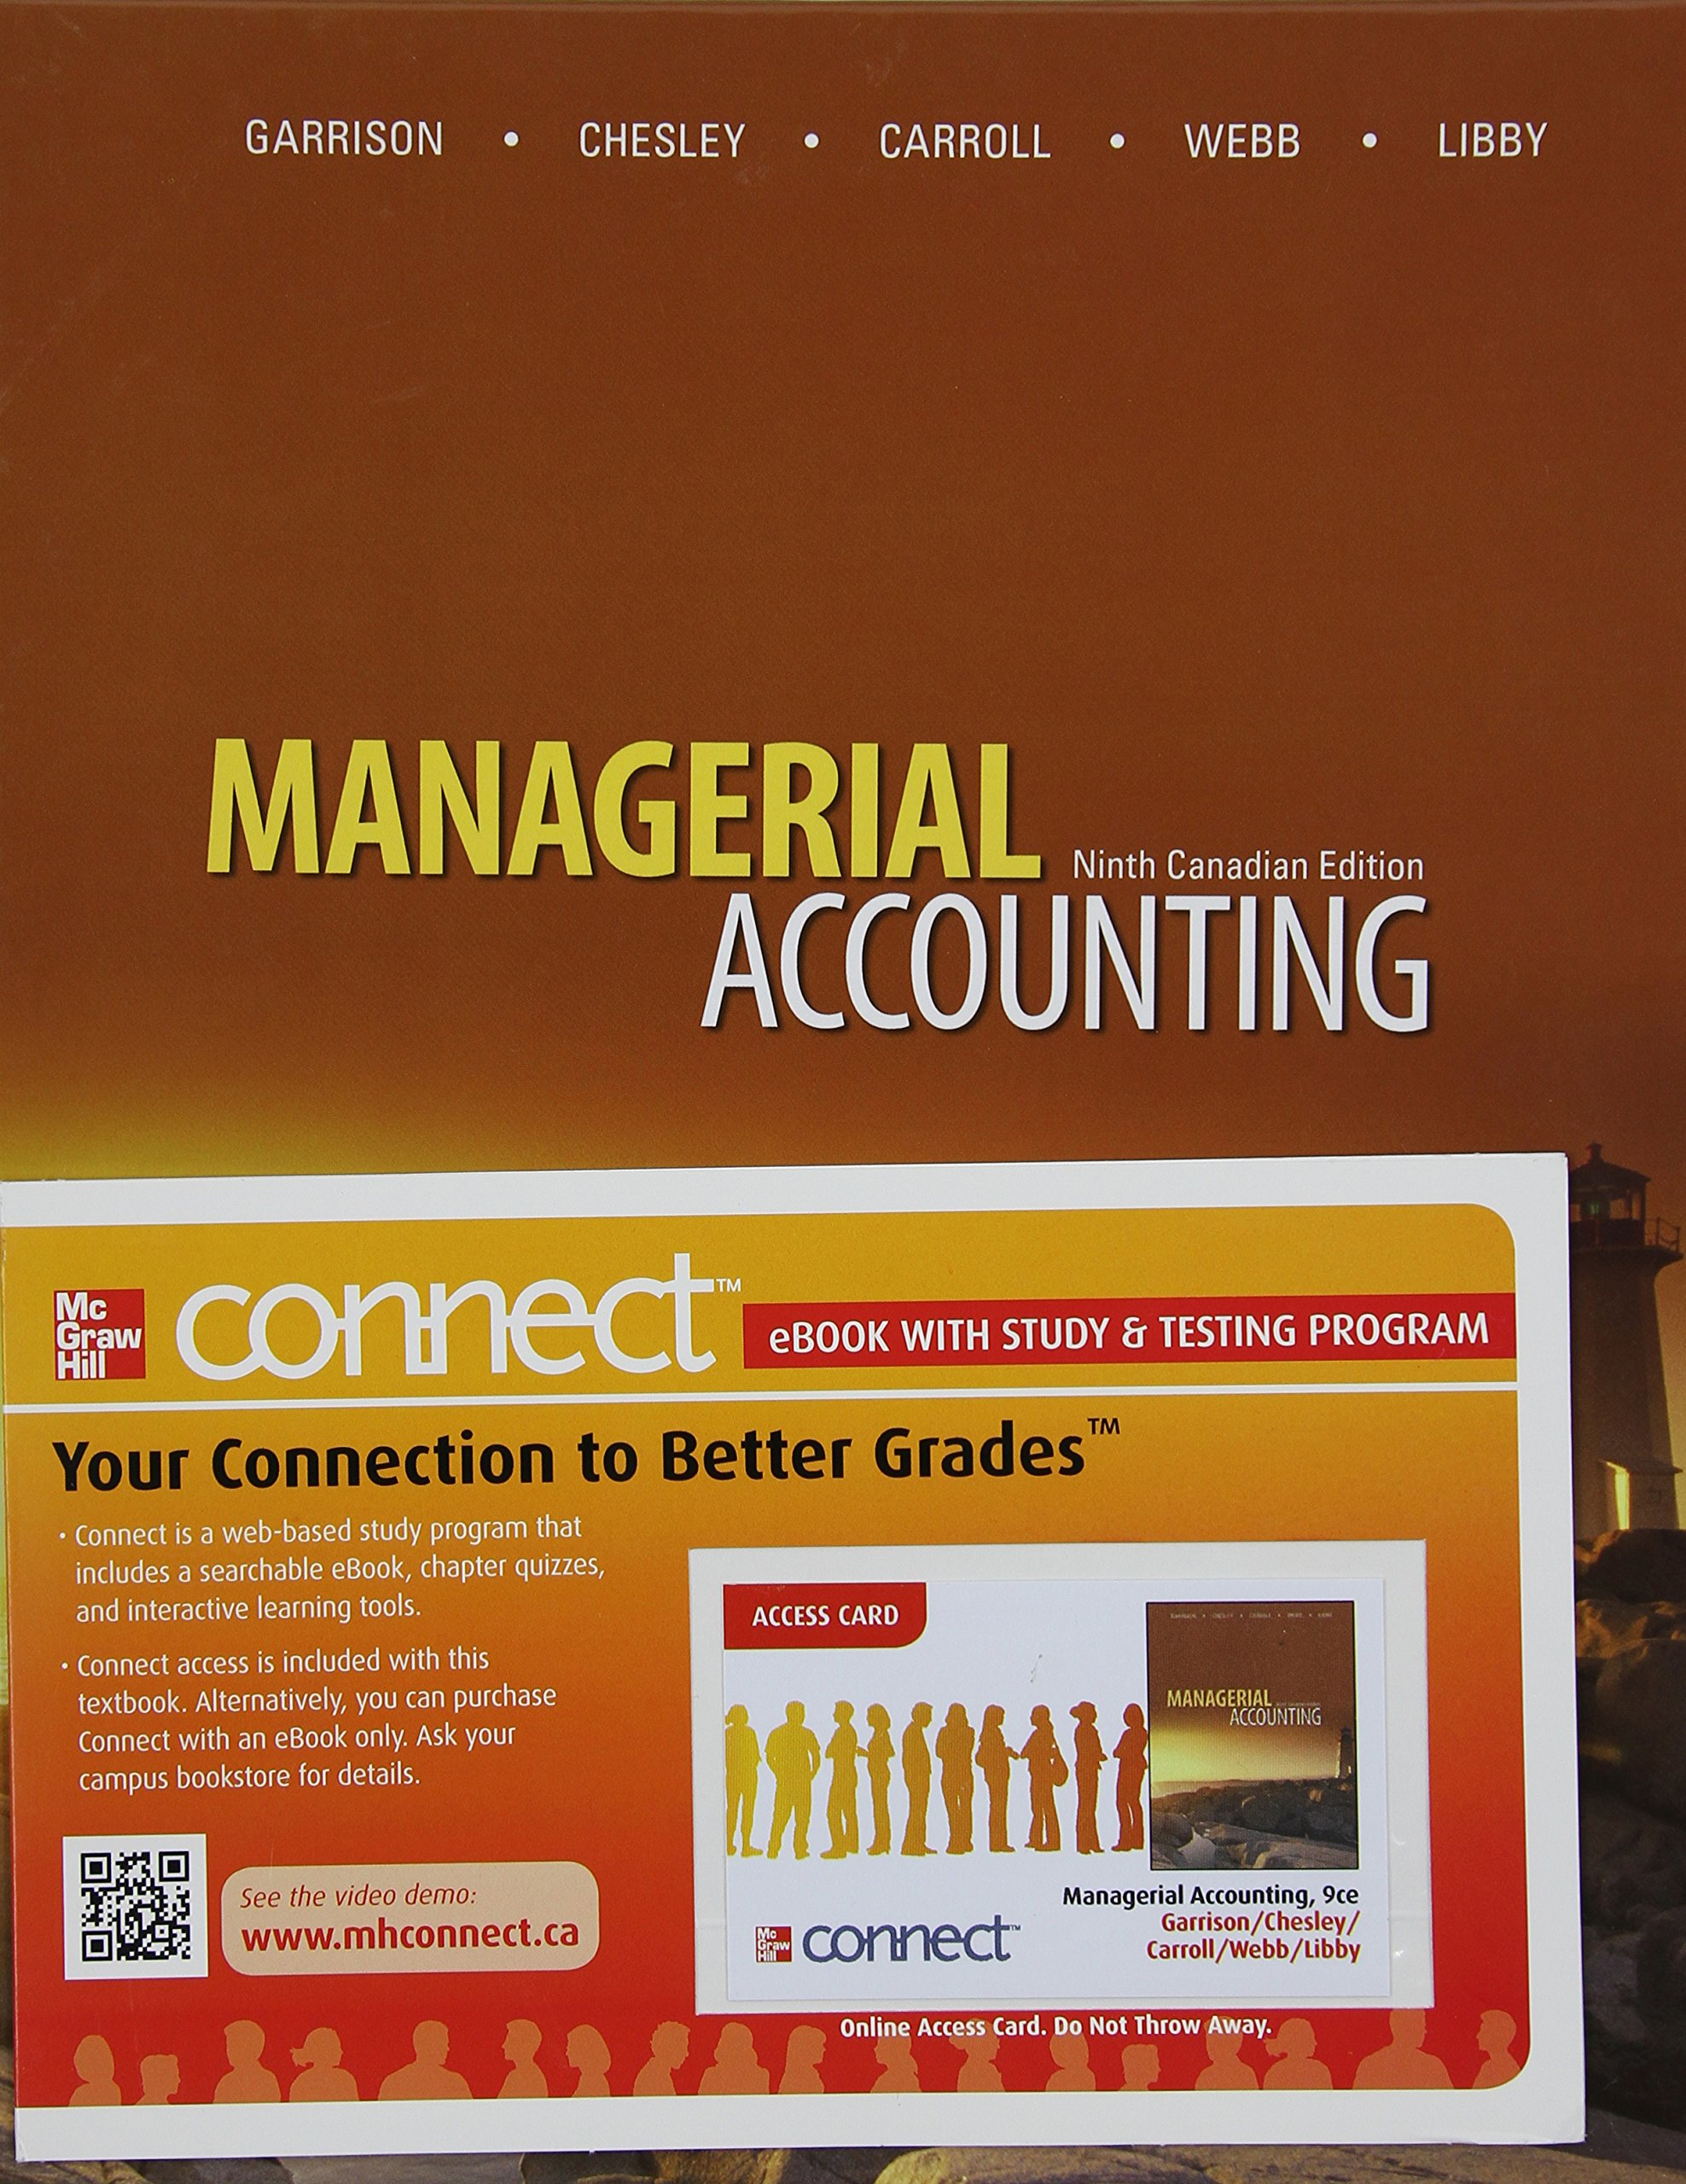 Managerial accounting ninth canadian edition carroll webb libby managerial accounting ninth canadian edition carroll webb libby garrison chesley 9780070401891 books amazon fandeluxe Gallery